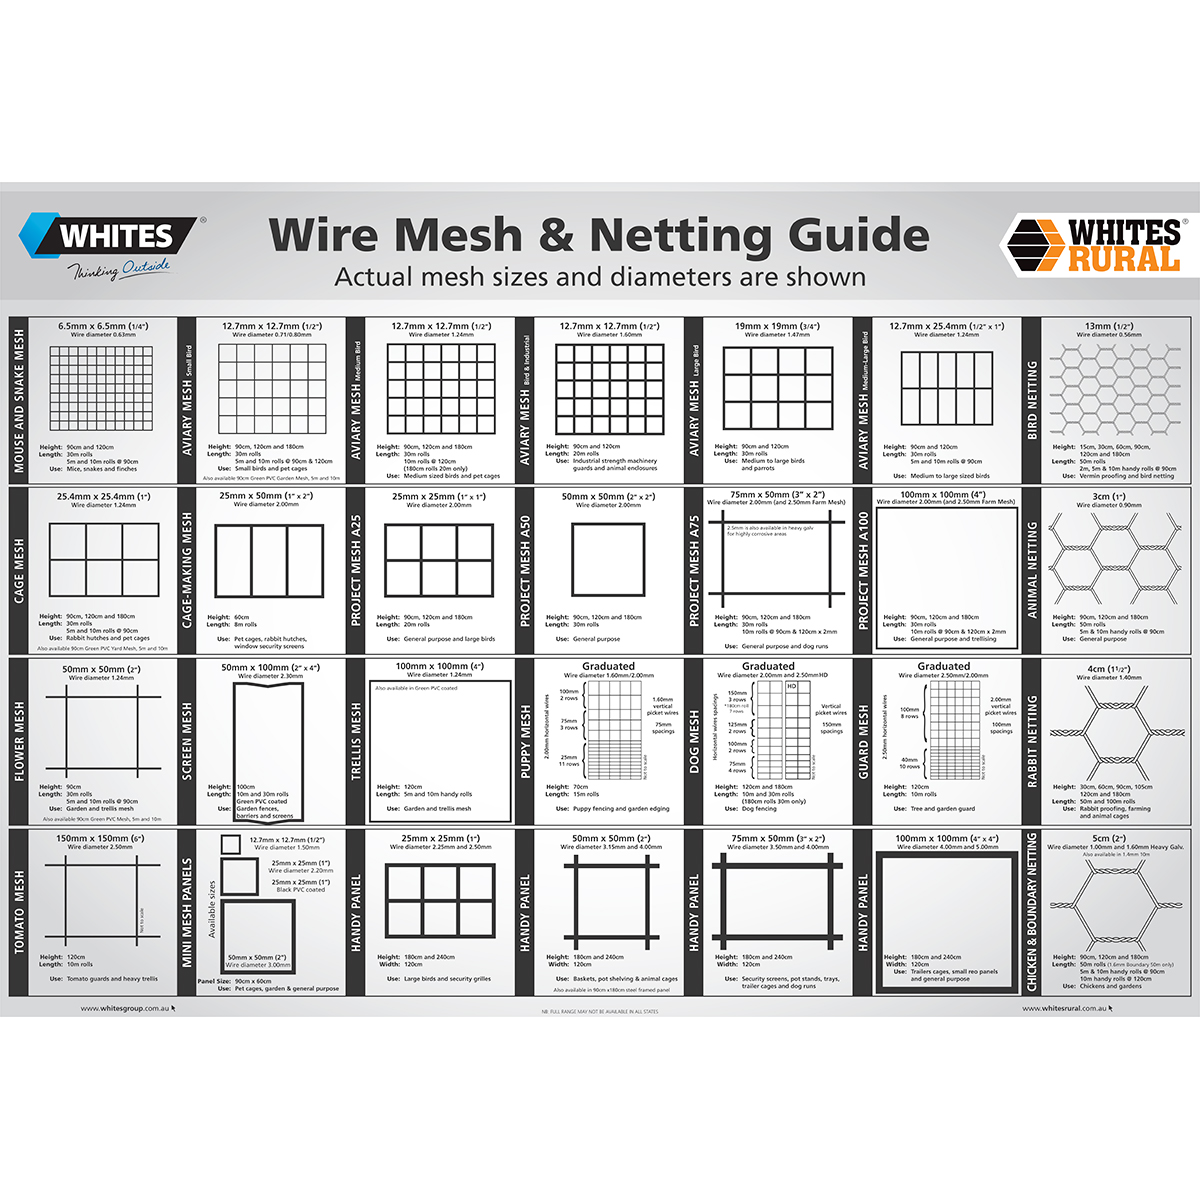 Wire Mesh & Netting Guide